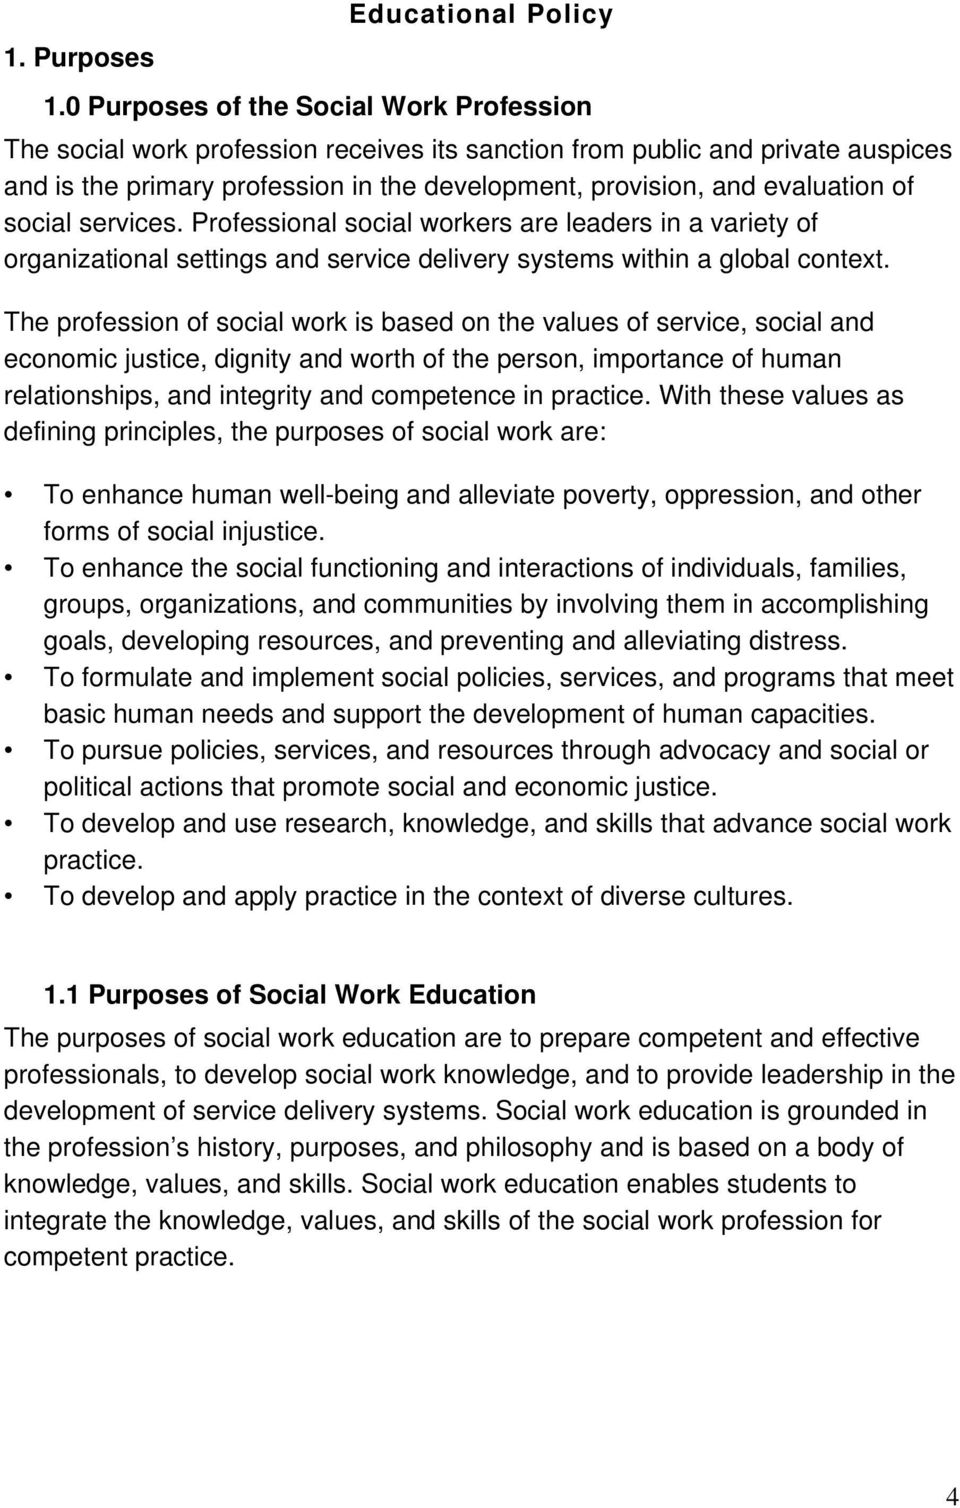 of social services. Professional social workers are leaders in a variety of organizational settings and service delivery systems within a global context.